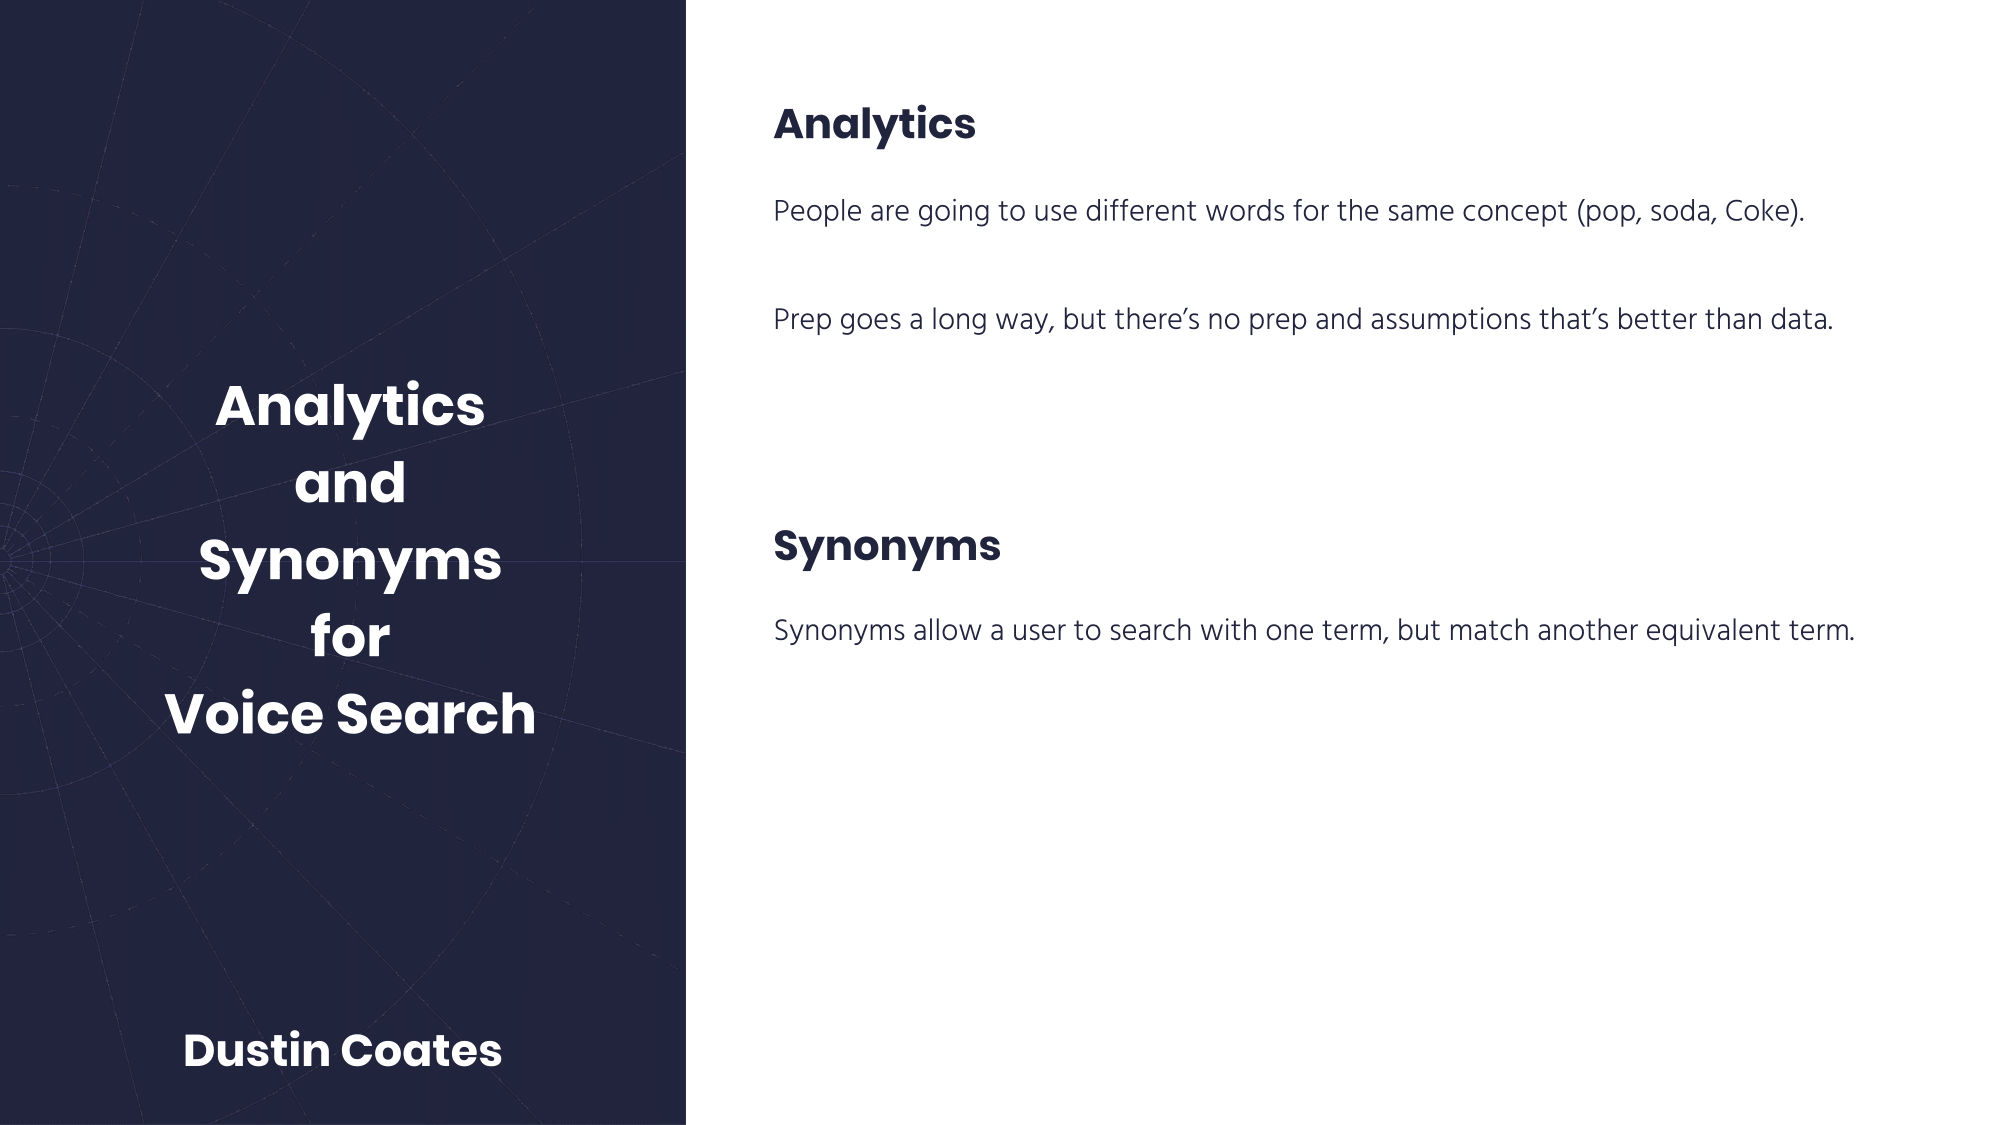 Analytics and synonyms